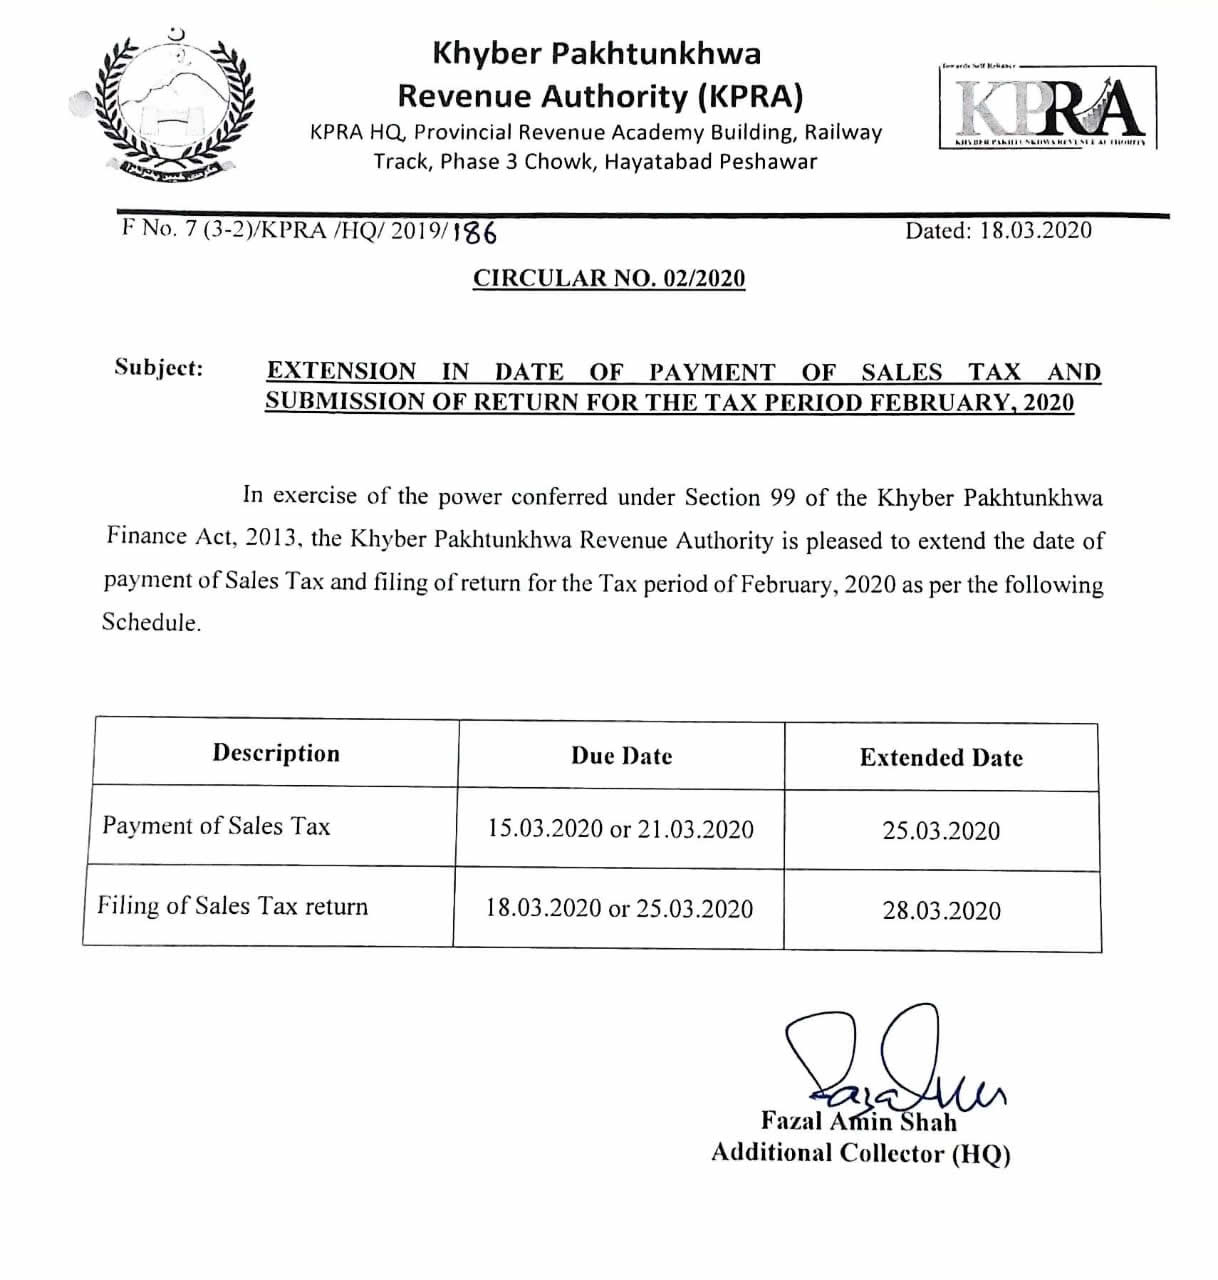 Extension in Date of Payment of Sales Tax and Submission of Return for the Tax Period February, 2020